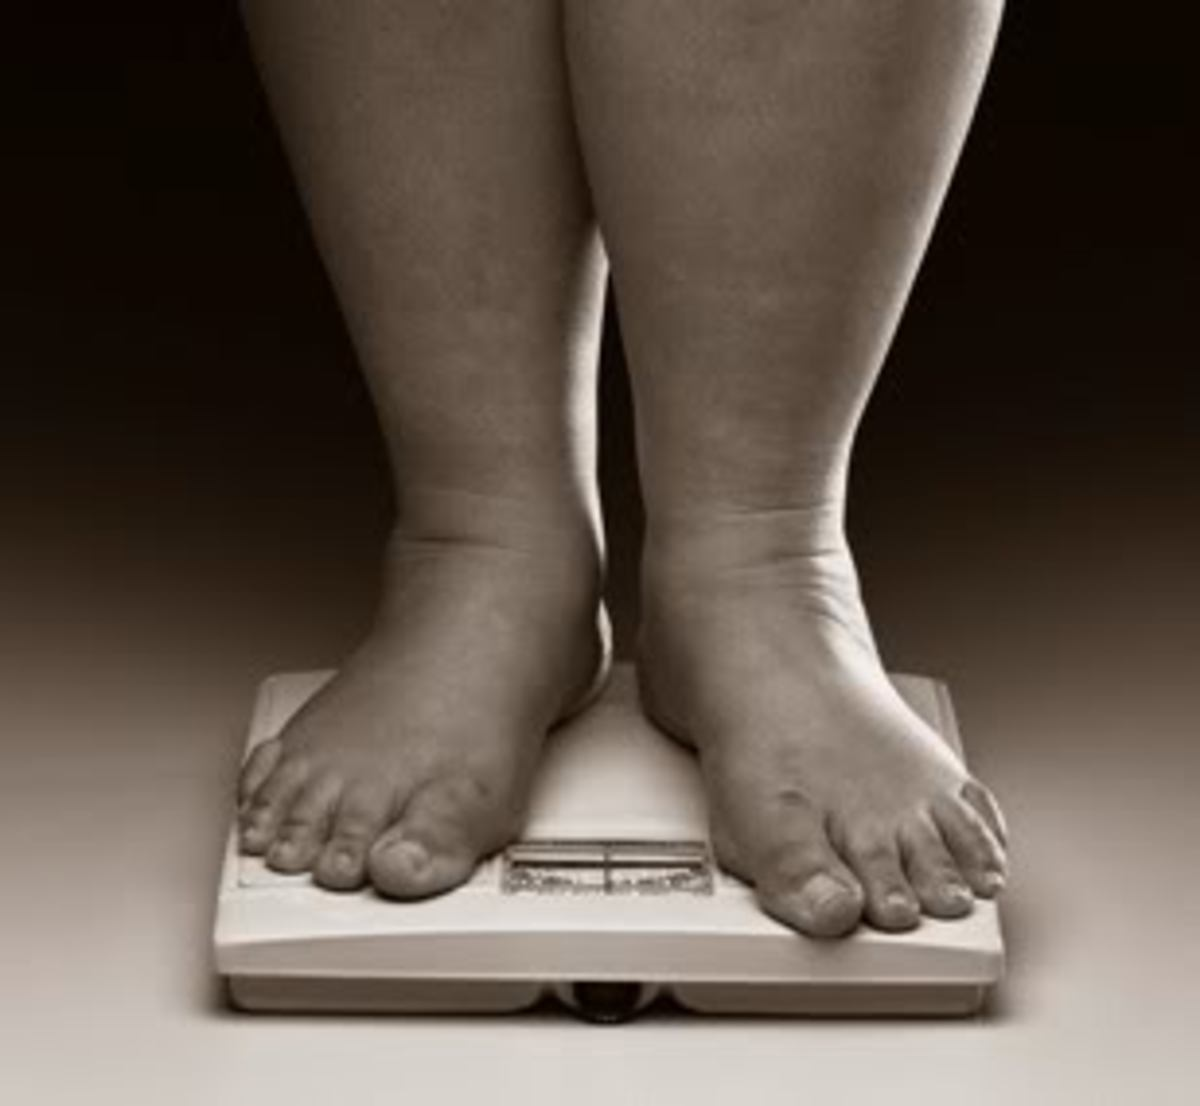 In modern research, weight gain is often linked to brain disorders or genetic adaptations inherited from your parents, not so much will power and discipline, but does this mean you are doomed to be fat forever?.